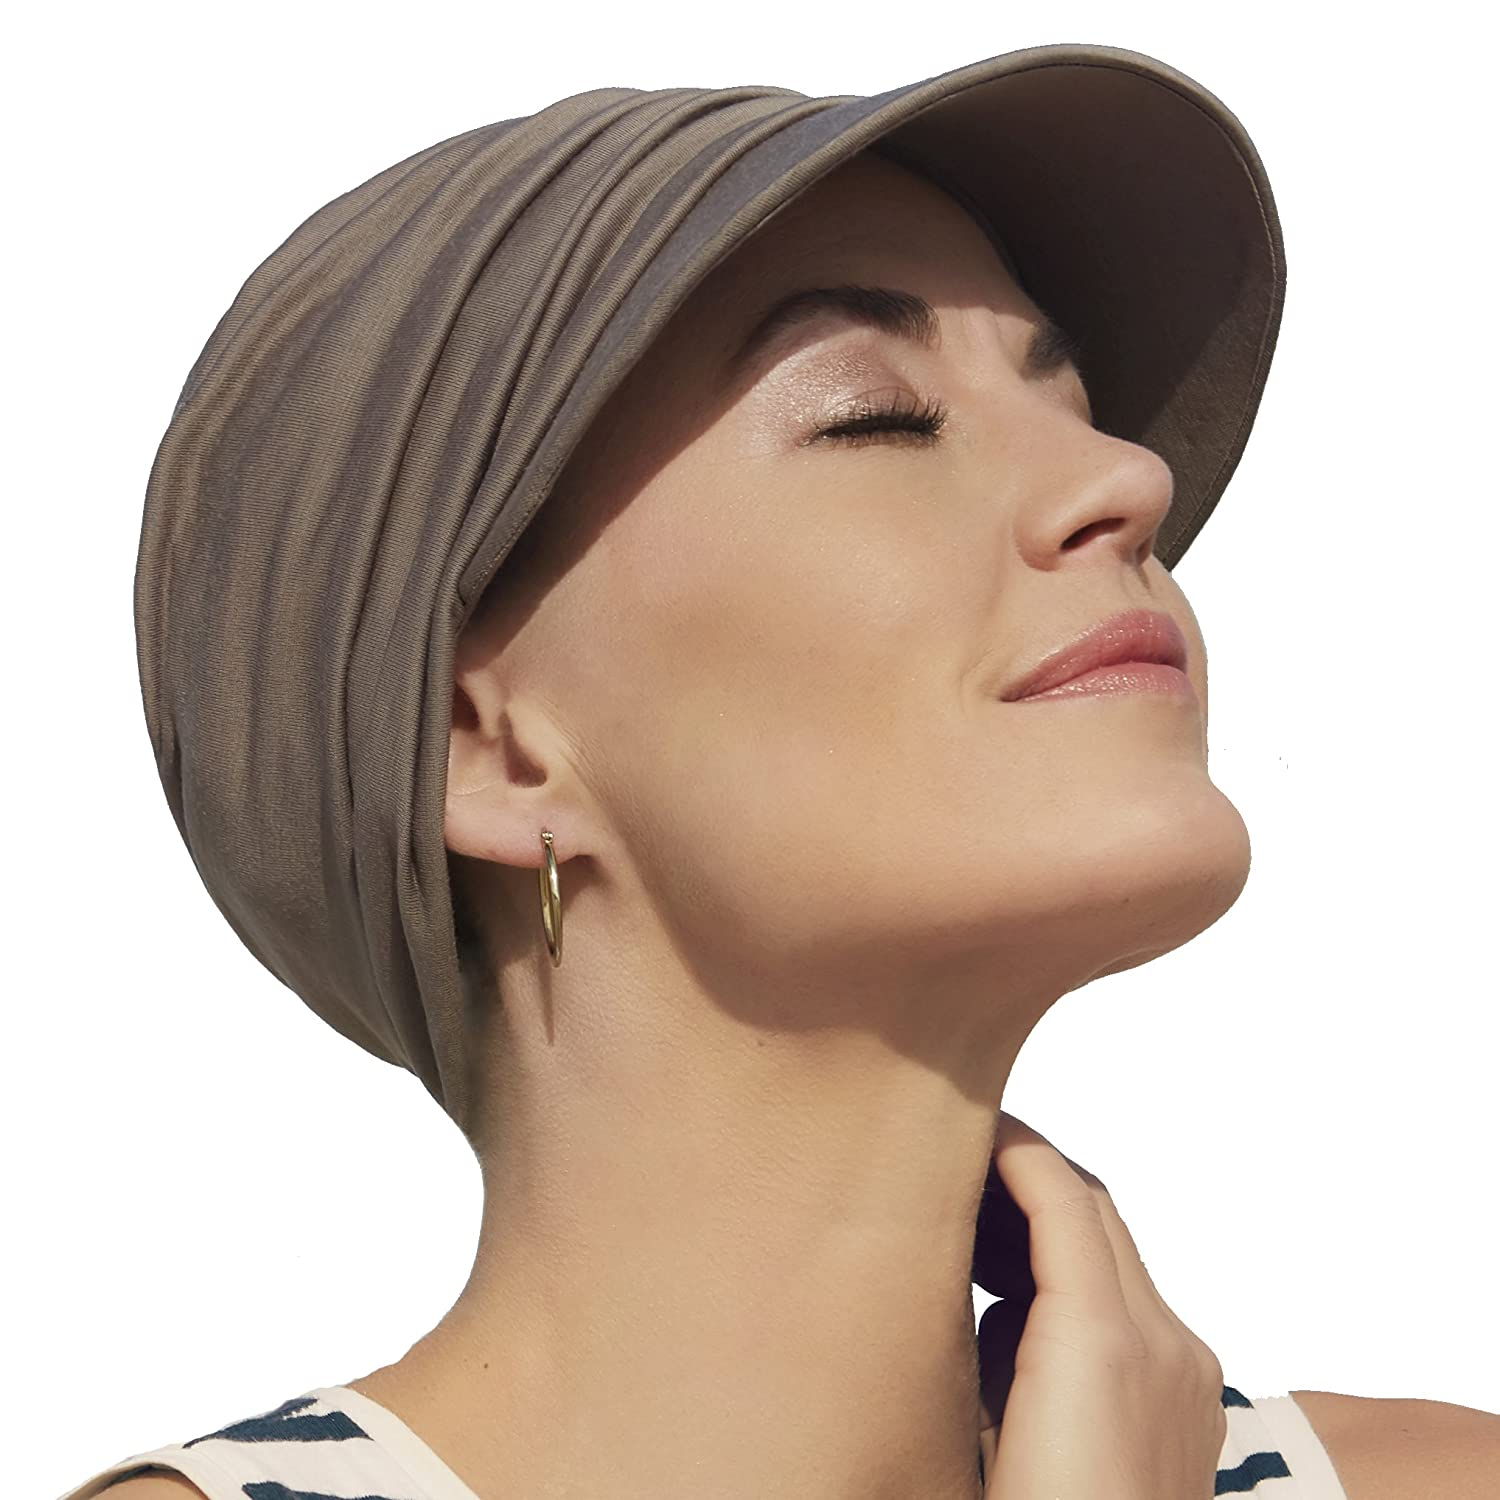 Bella Kappe mit 37.5®Technology mit 50+ UV-Schutzfaktor - Dusty Brown Christine Headwear